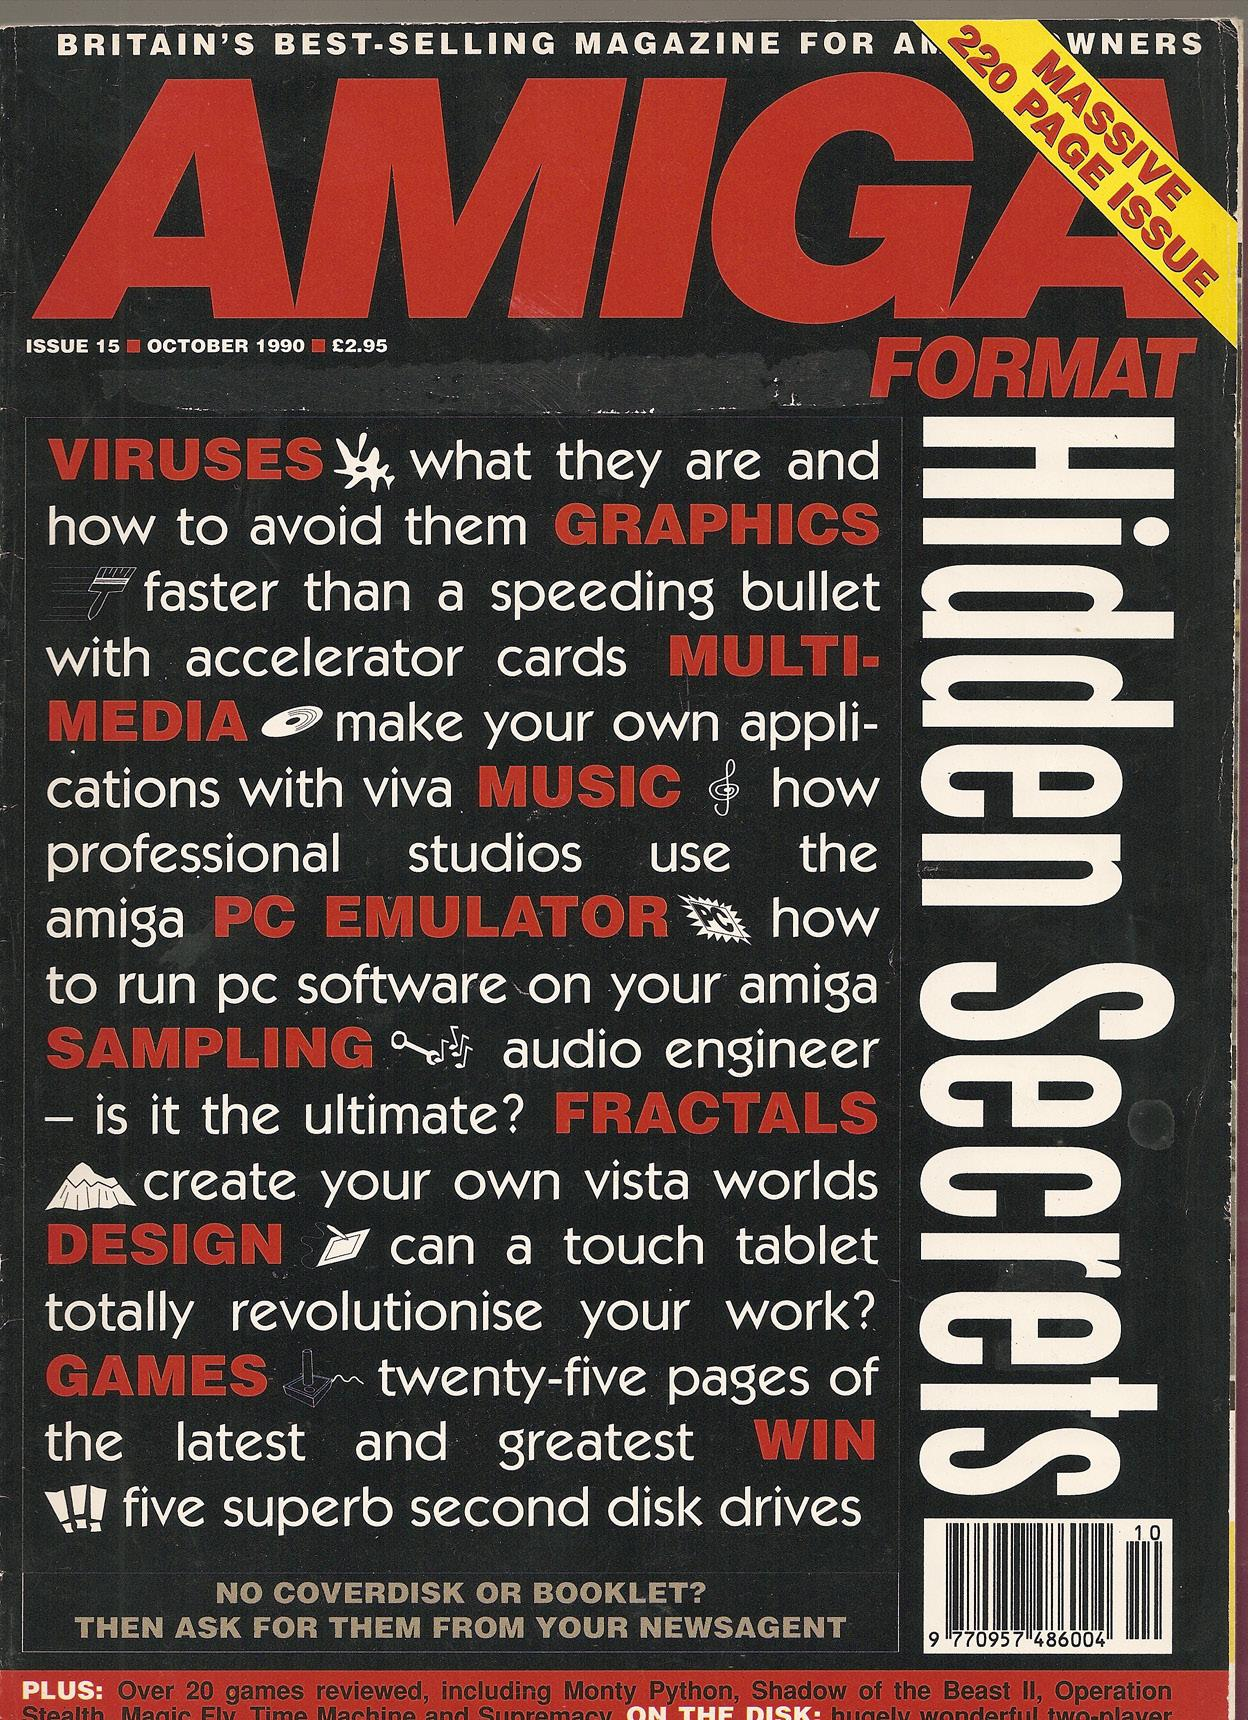 amiga-format-issue-15-front-cover